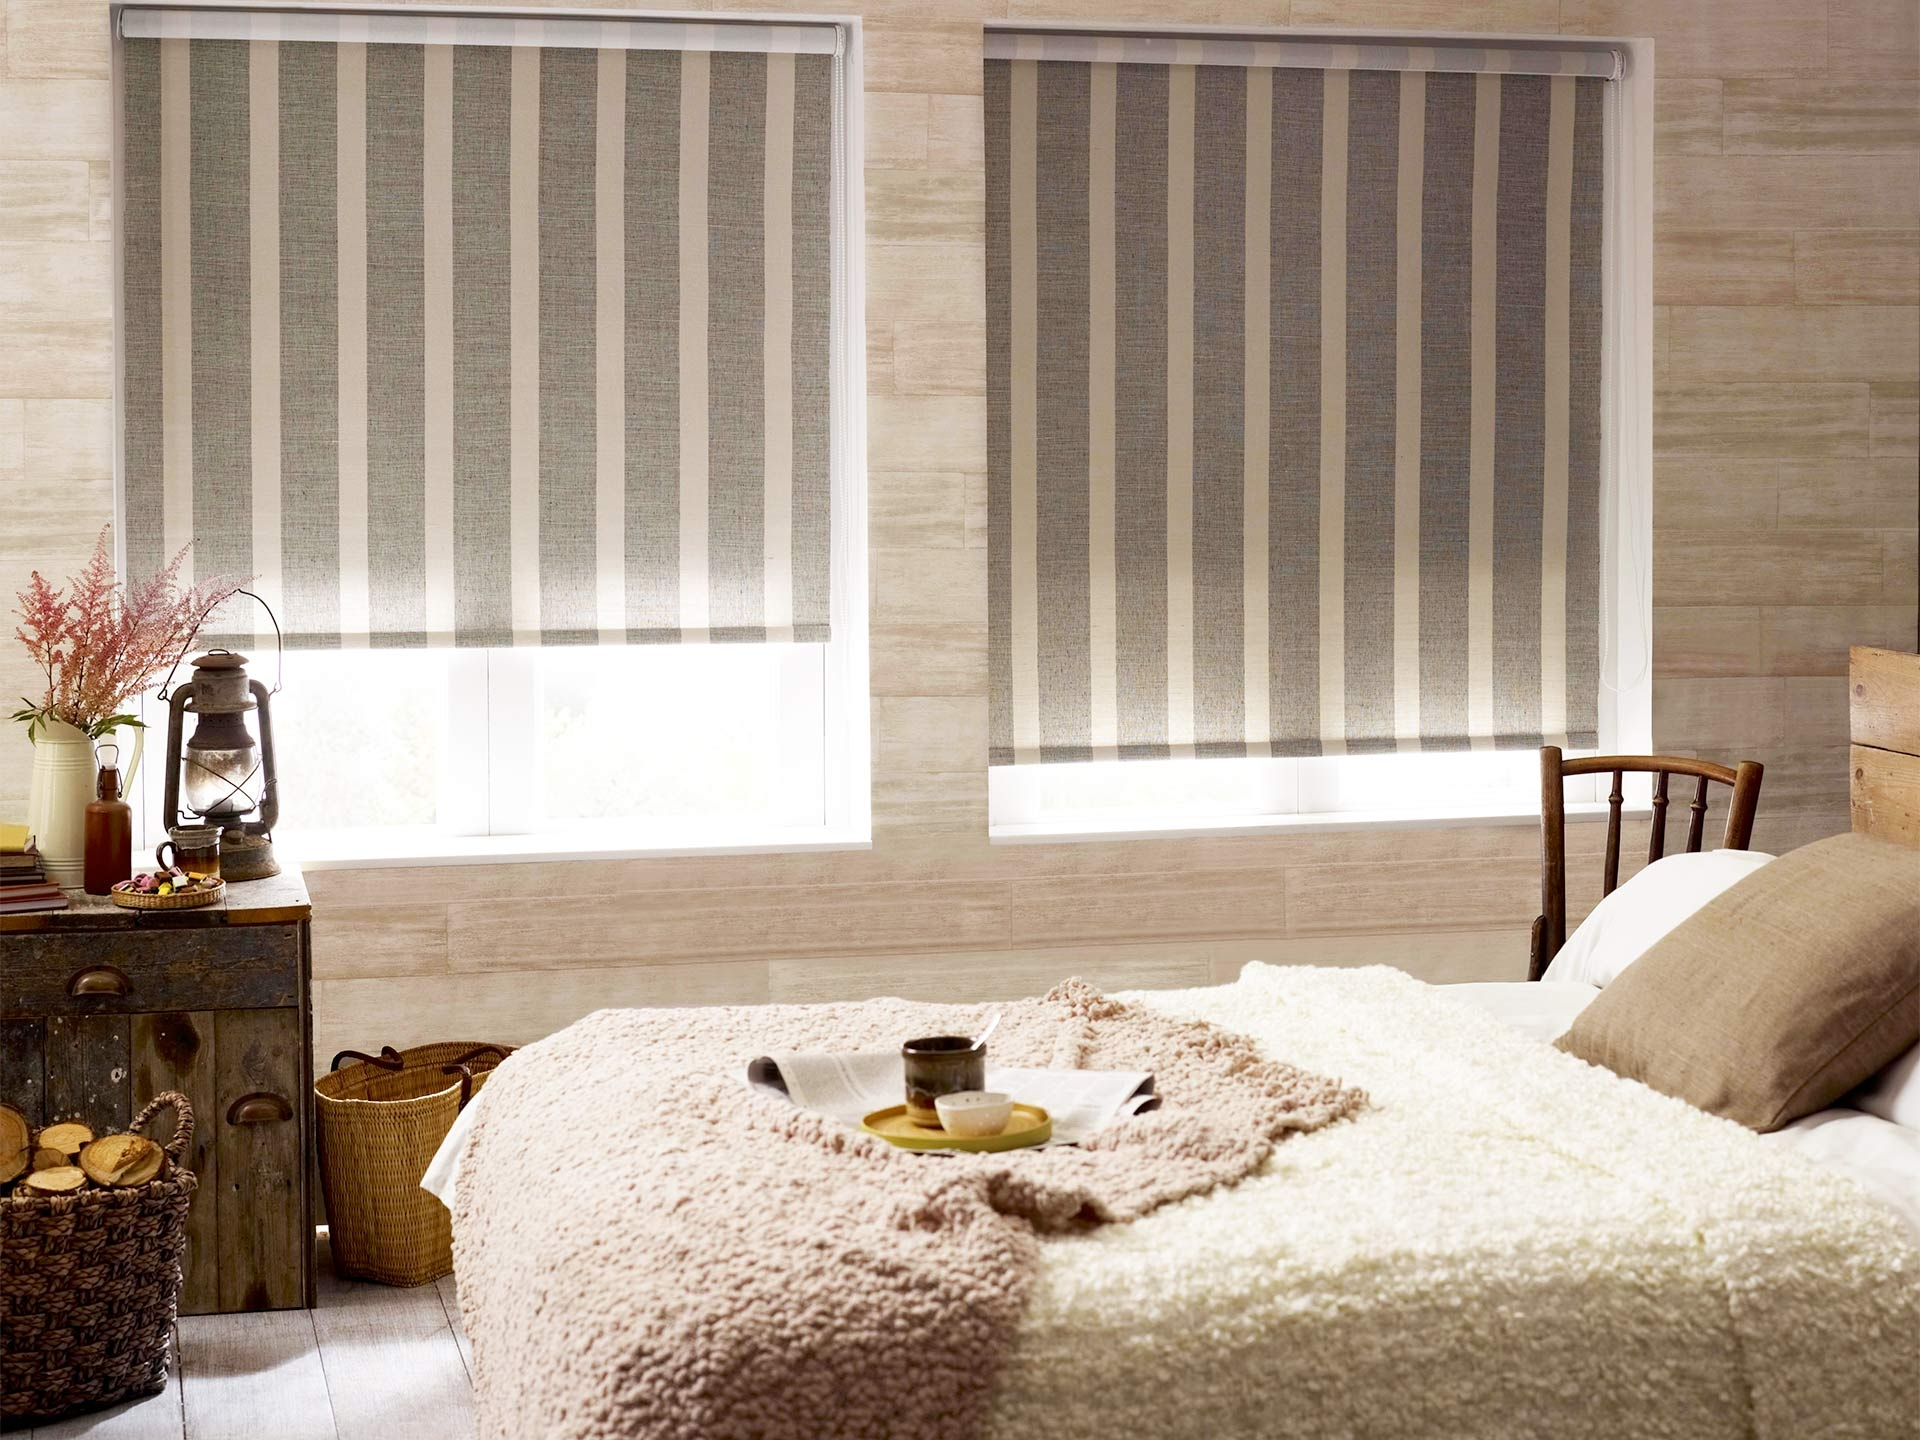 Blinds Stobira Ltd With Regard To Luxury Roman Blinds (Image 3 of 15)